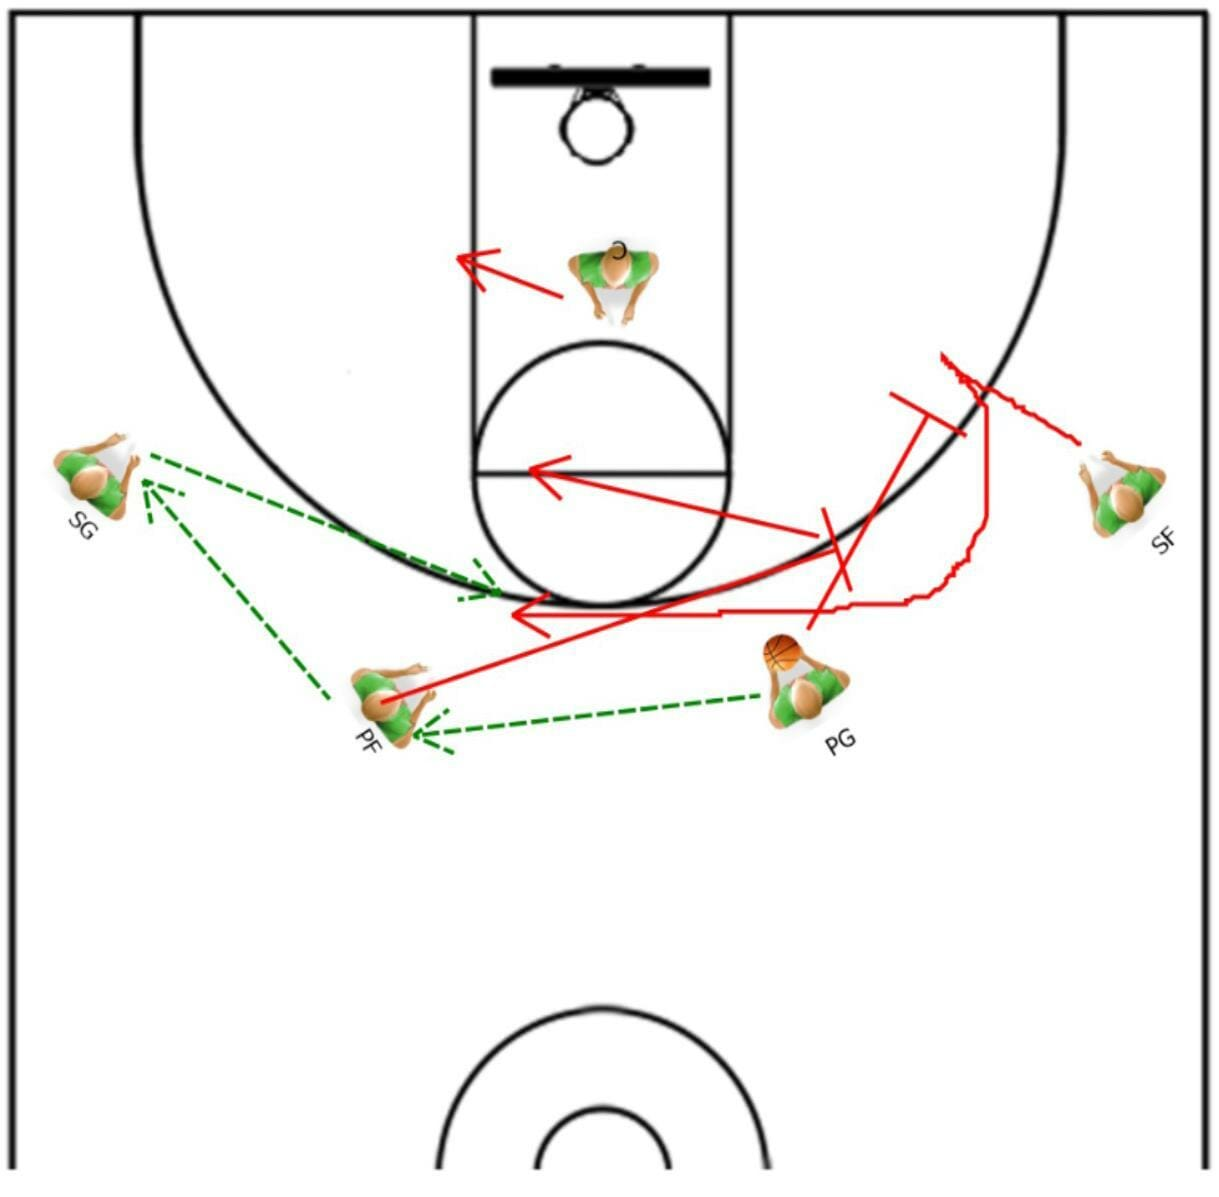 How To Get Quality 3 Point Shots In Transition